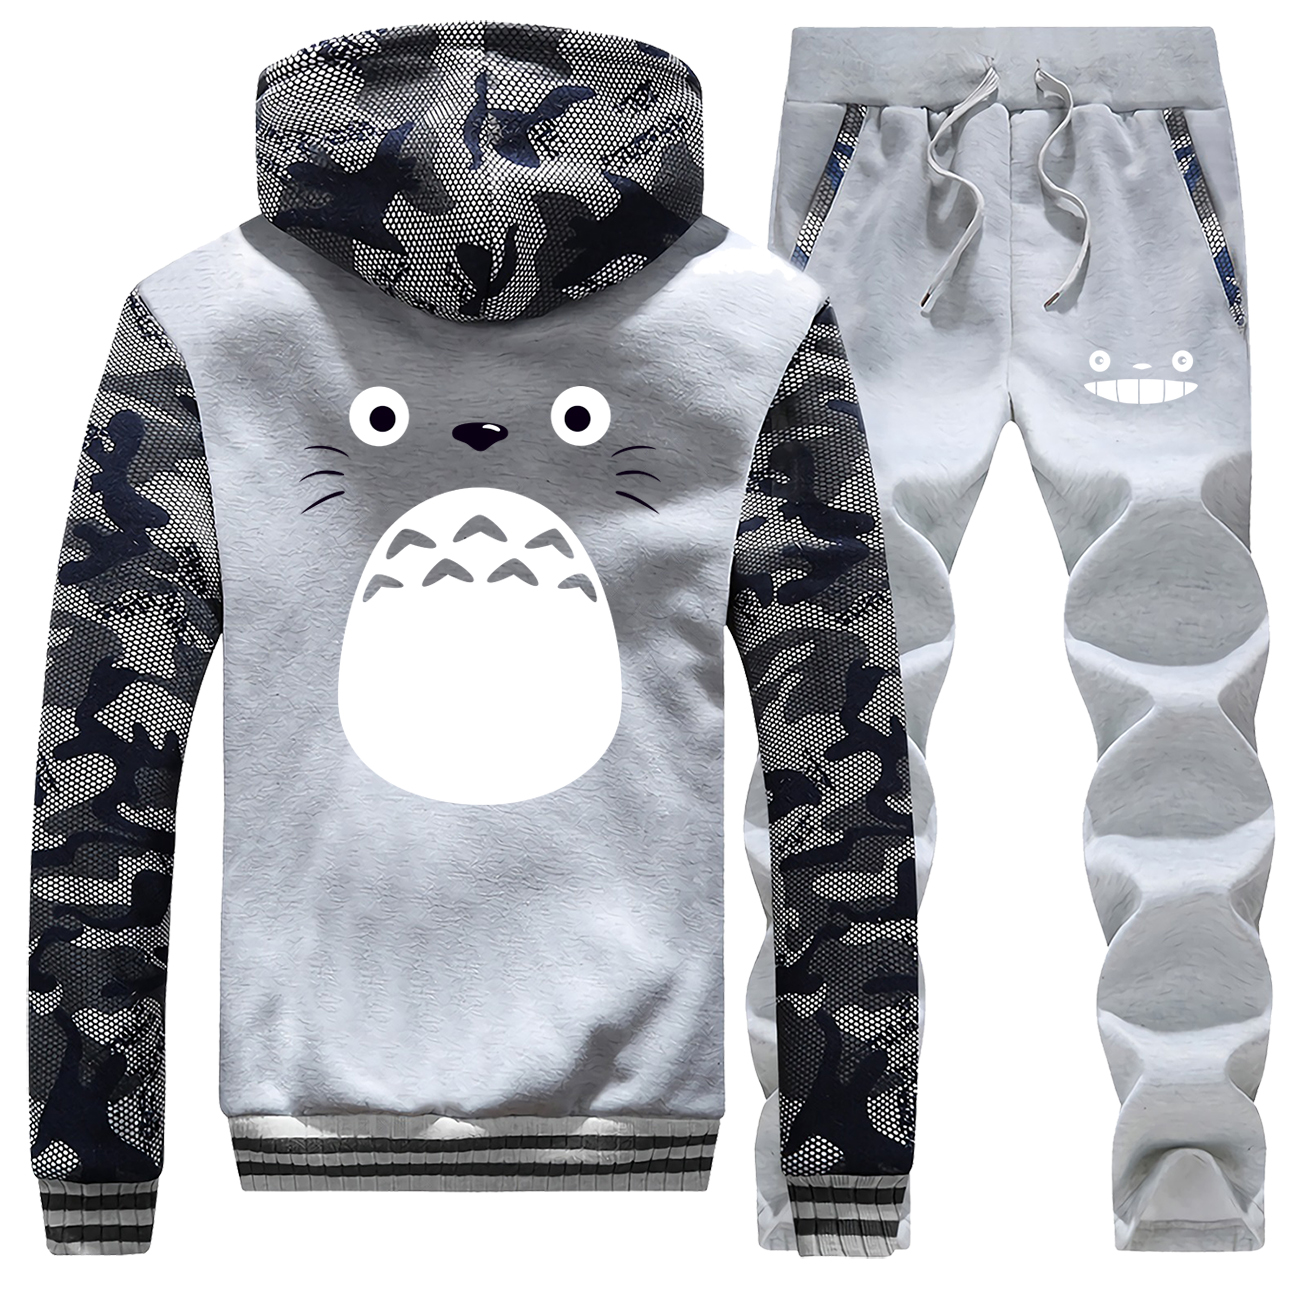 Miyazaki Hayao Cartoon Spirited Away Totoro Men Thick Hoodies Warm Suit Jacket+Pants 2 Piece Sets Studio Ghibli Mens Sweatshirt